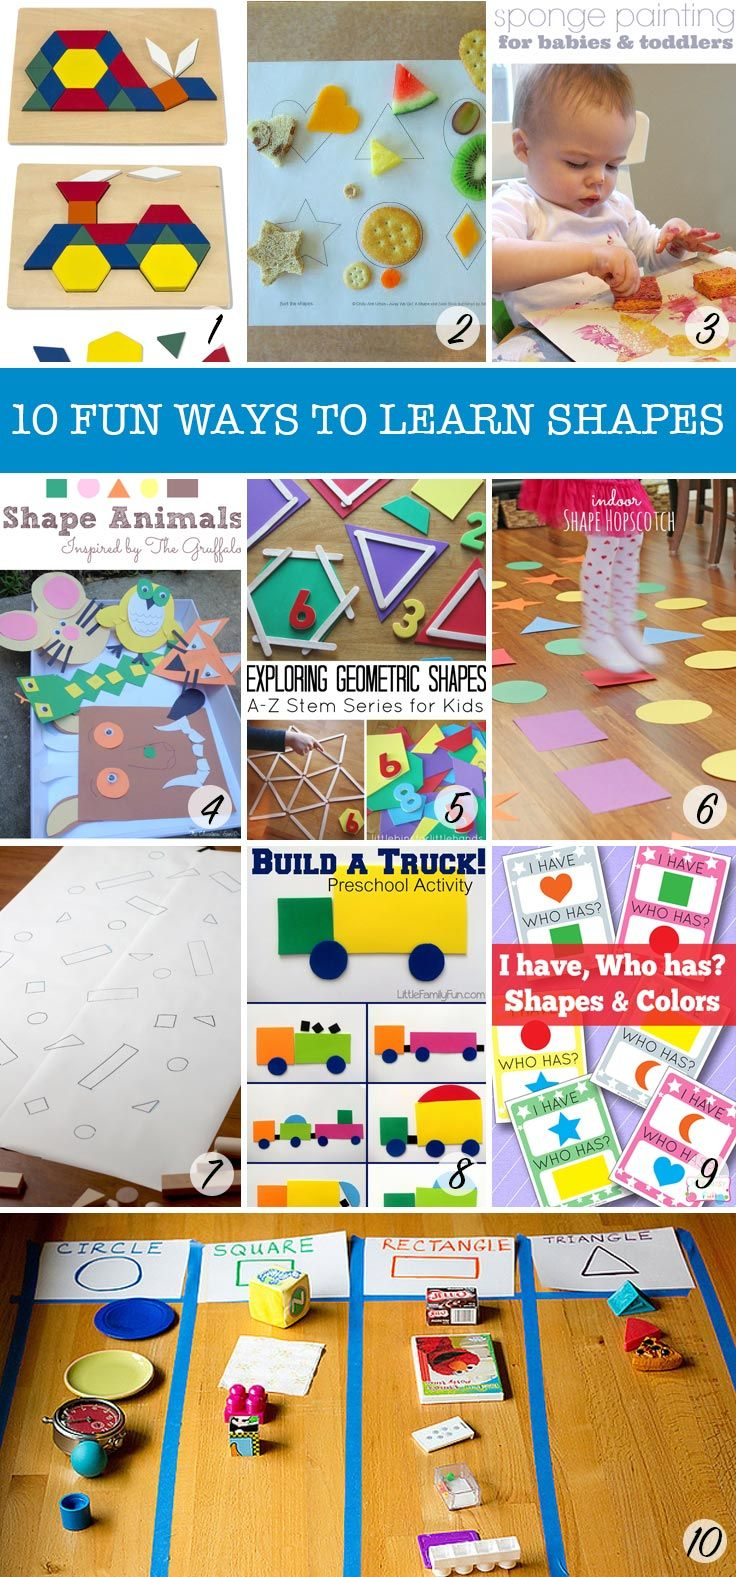 113 best shape crafts and activities images on pinterest